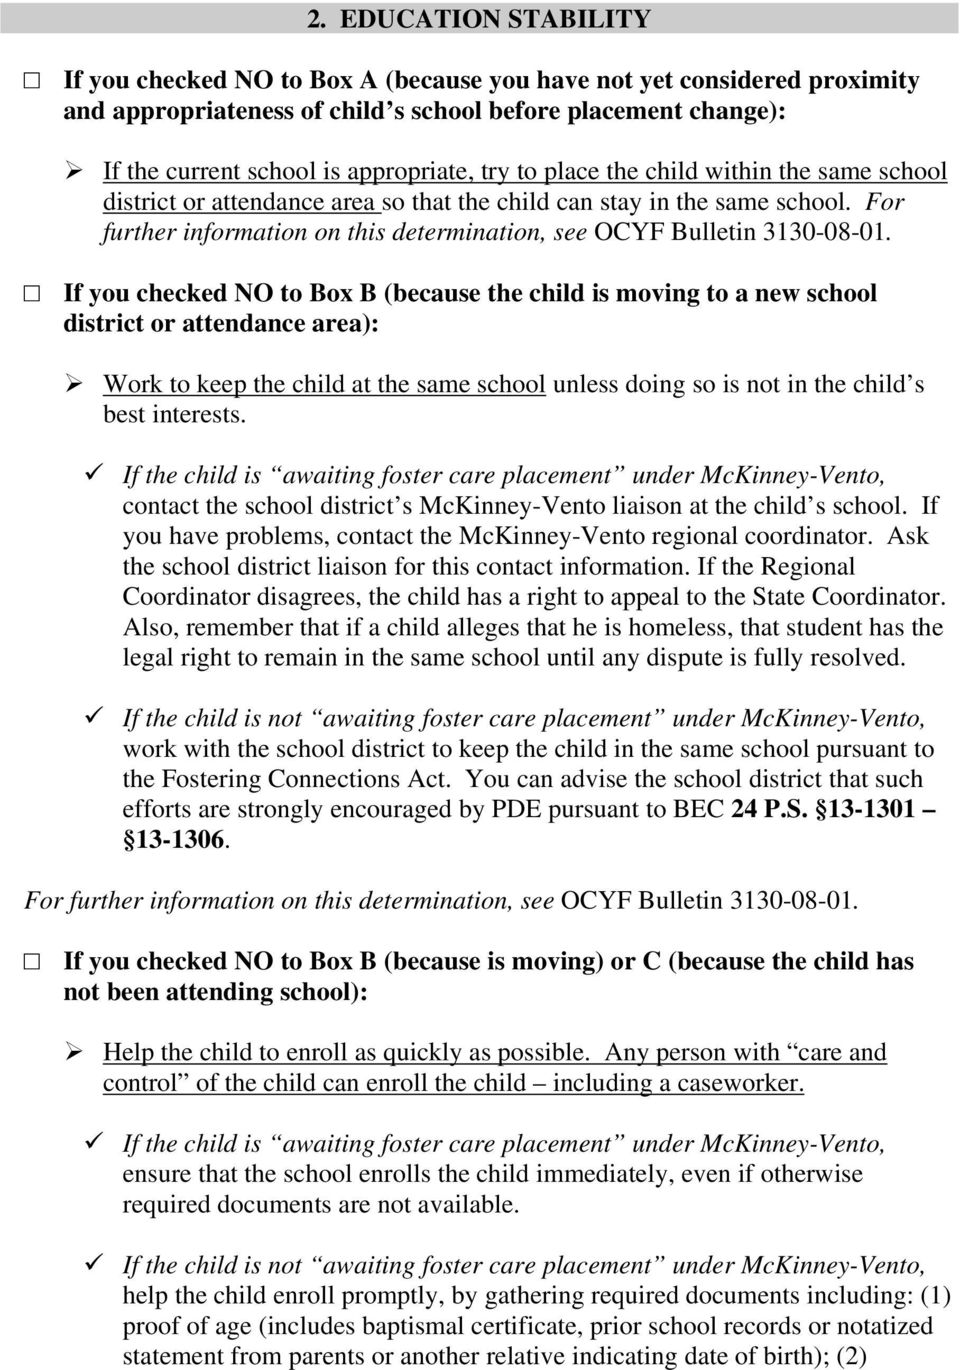 If you checked NO to Box B (because the child is moving to a new school district or attendance area): Work to keep the child at the same school unless doing so is not in the child s best interests.